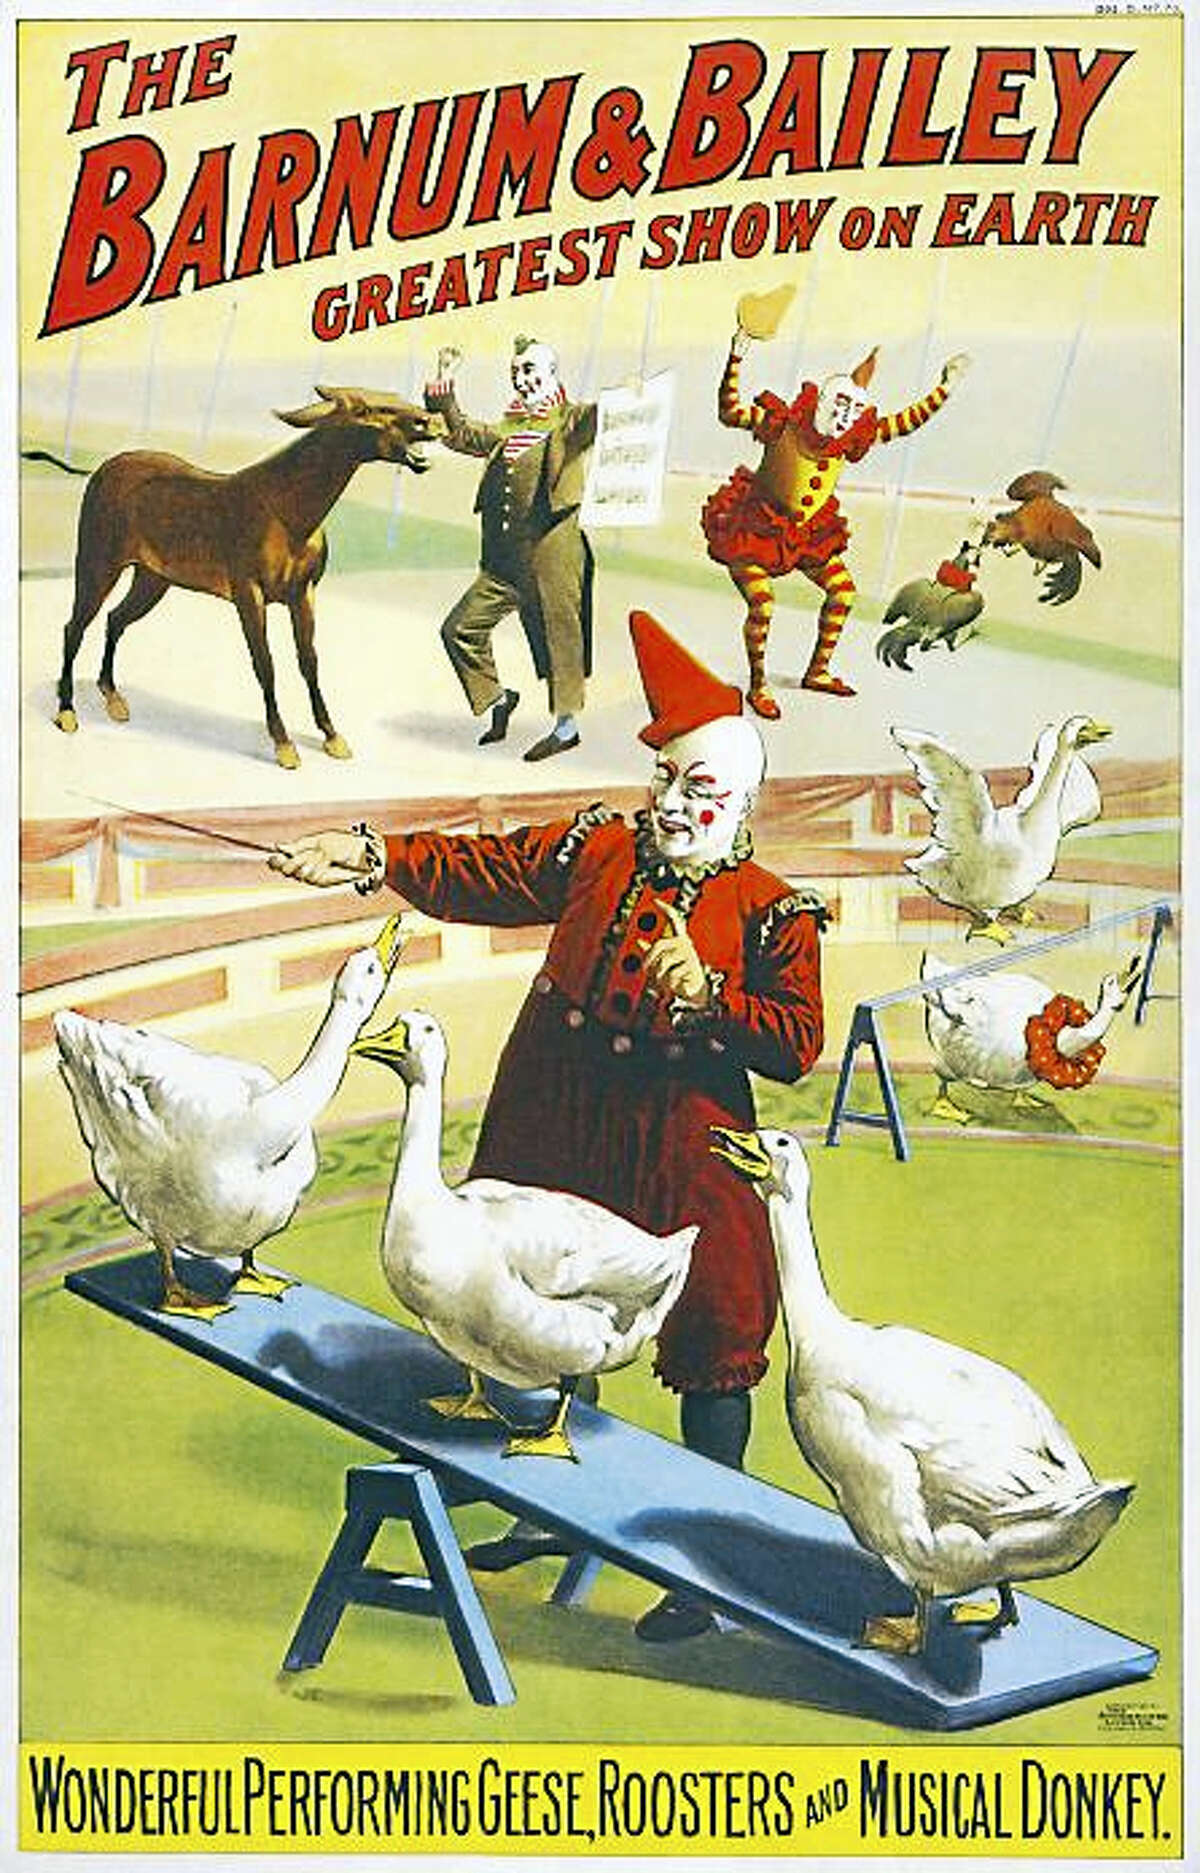 Send in the clowns...and the geese, roosters and even a musical donkey.